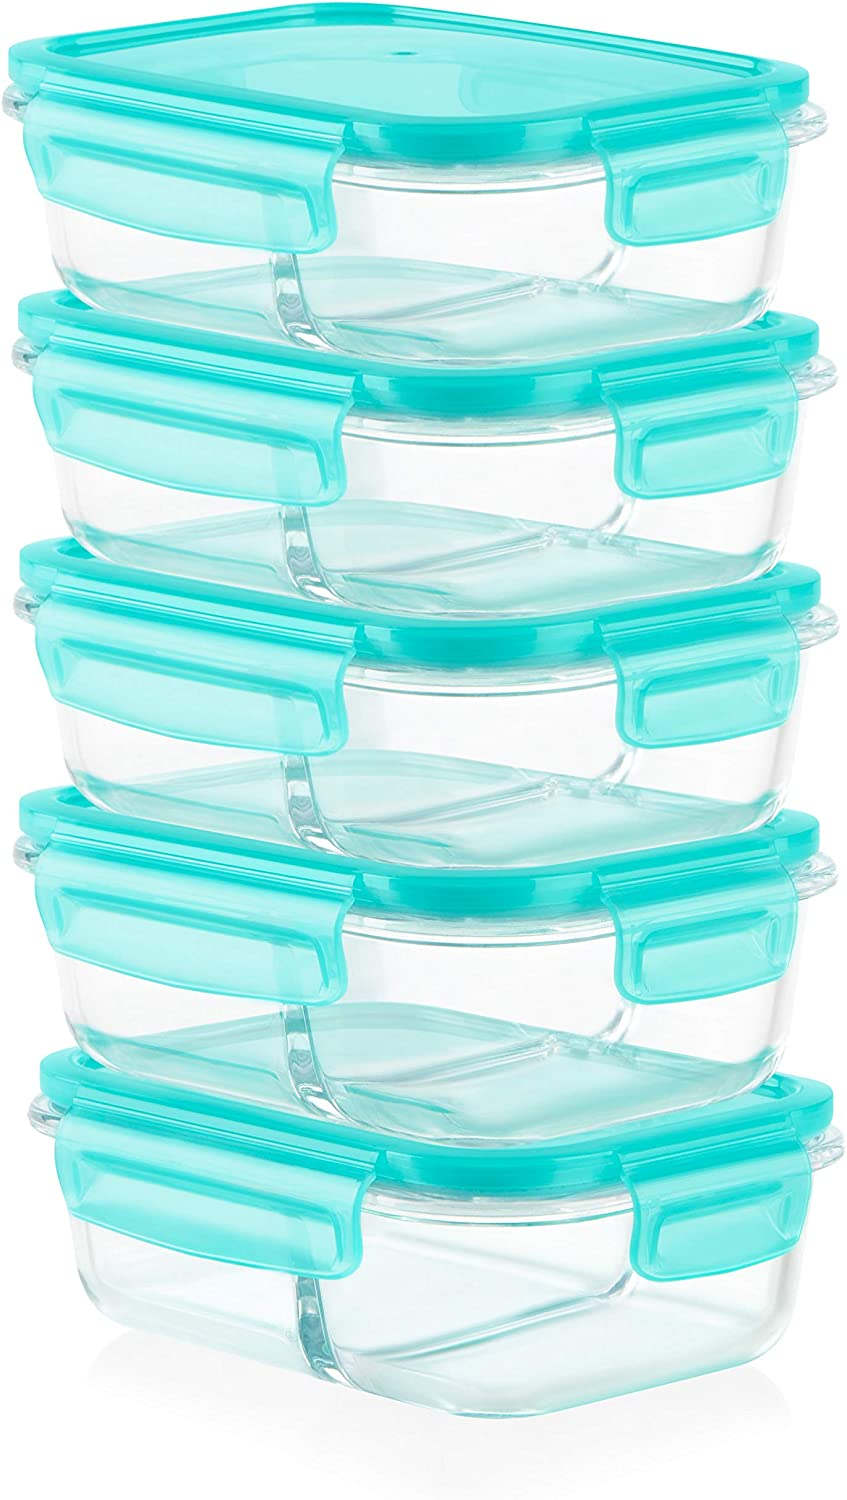 Pyrex Mealbox Bento Box, divided glass food storage containers, 10-Piece